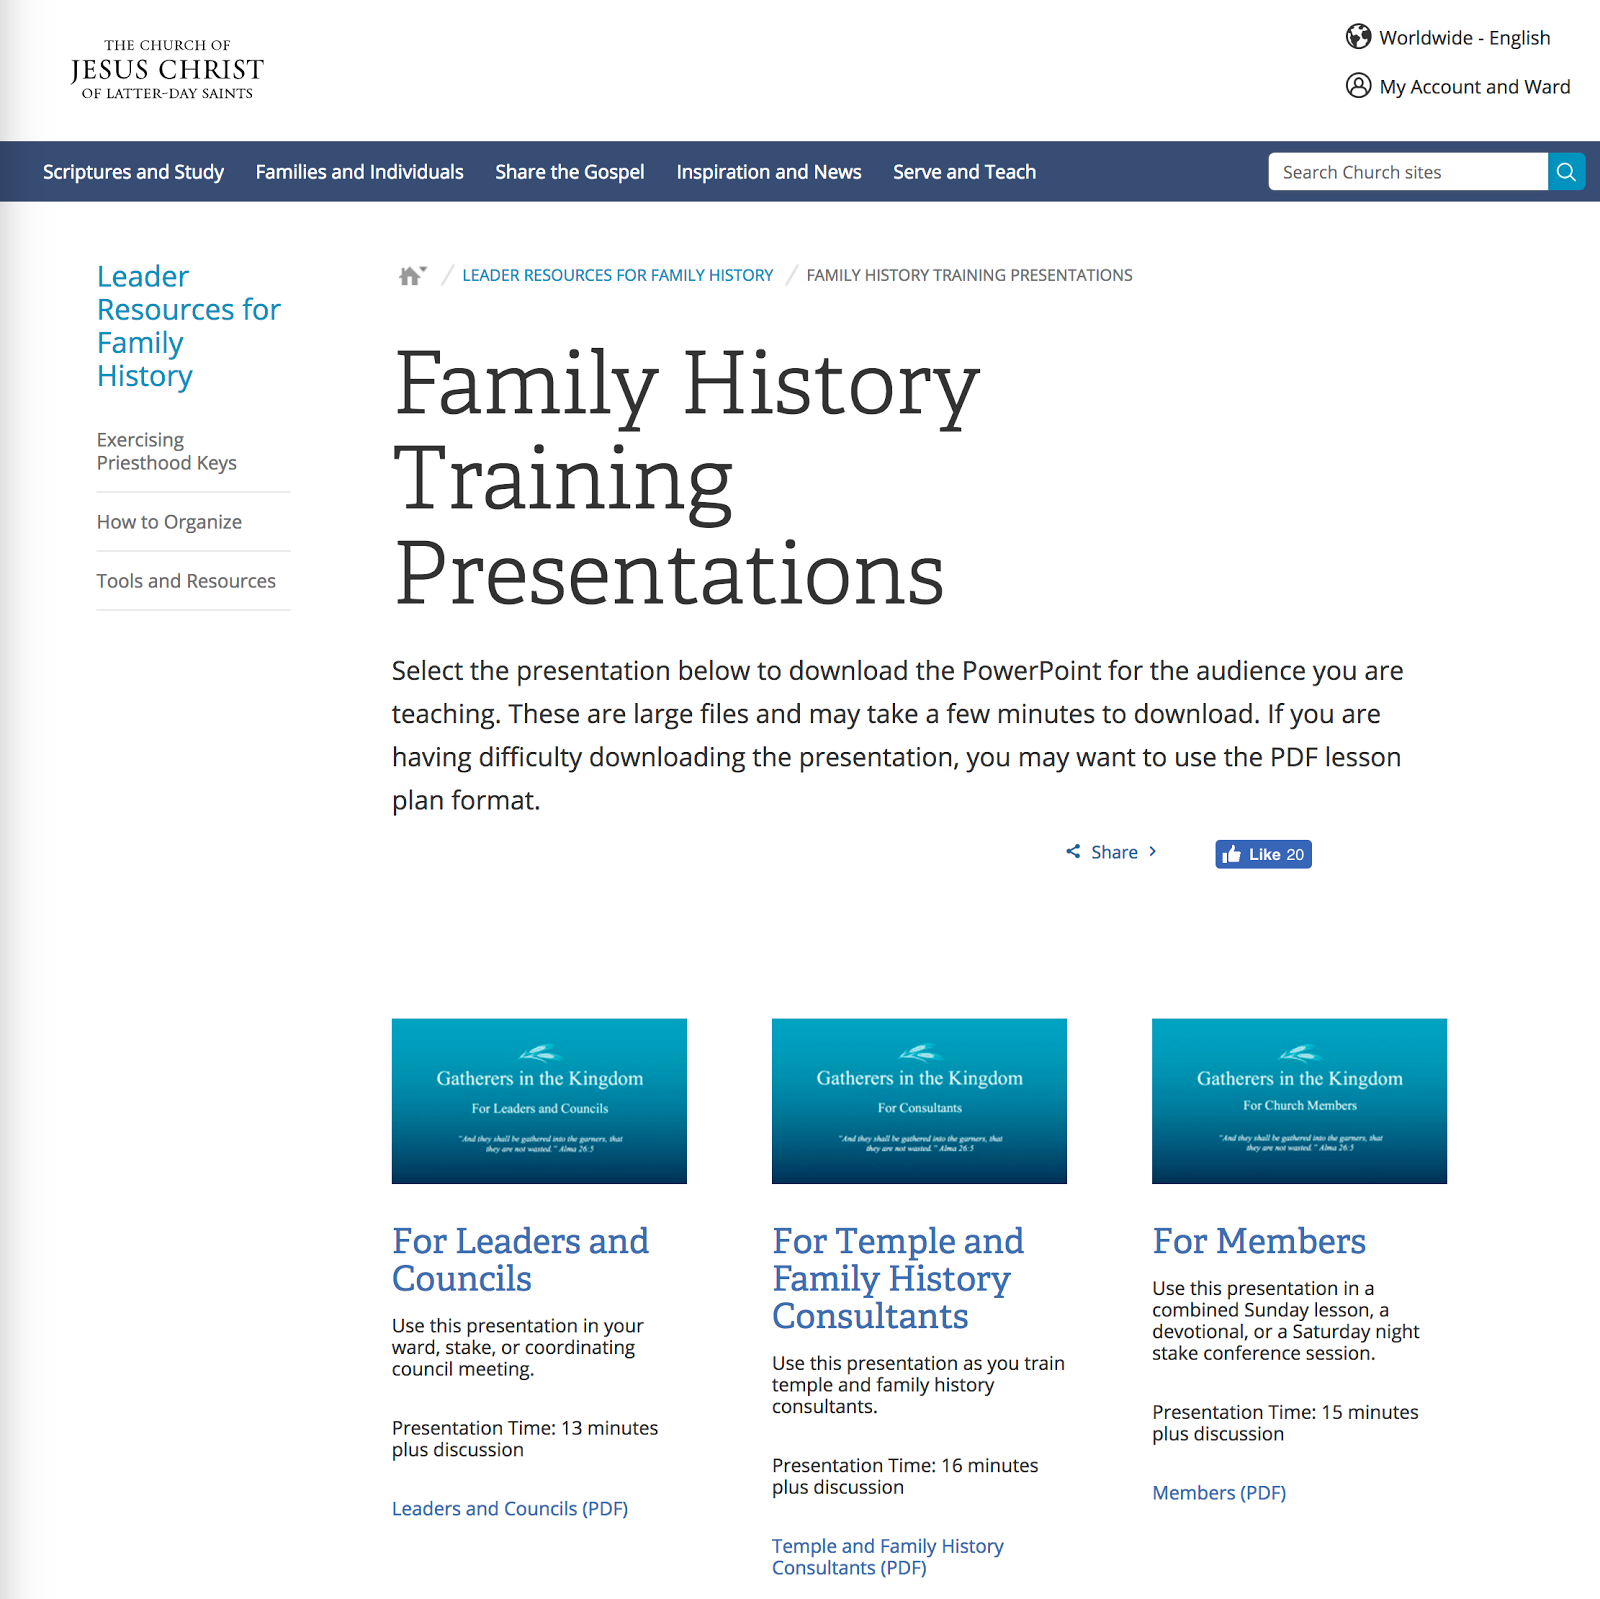 rejoice and be exceeding glad family history training presentations